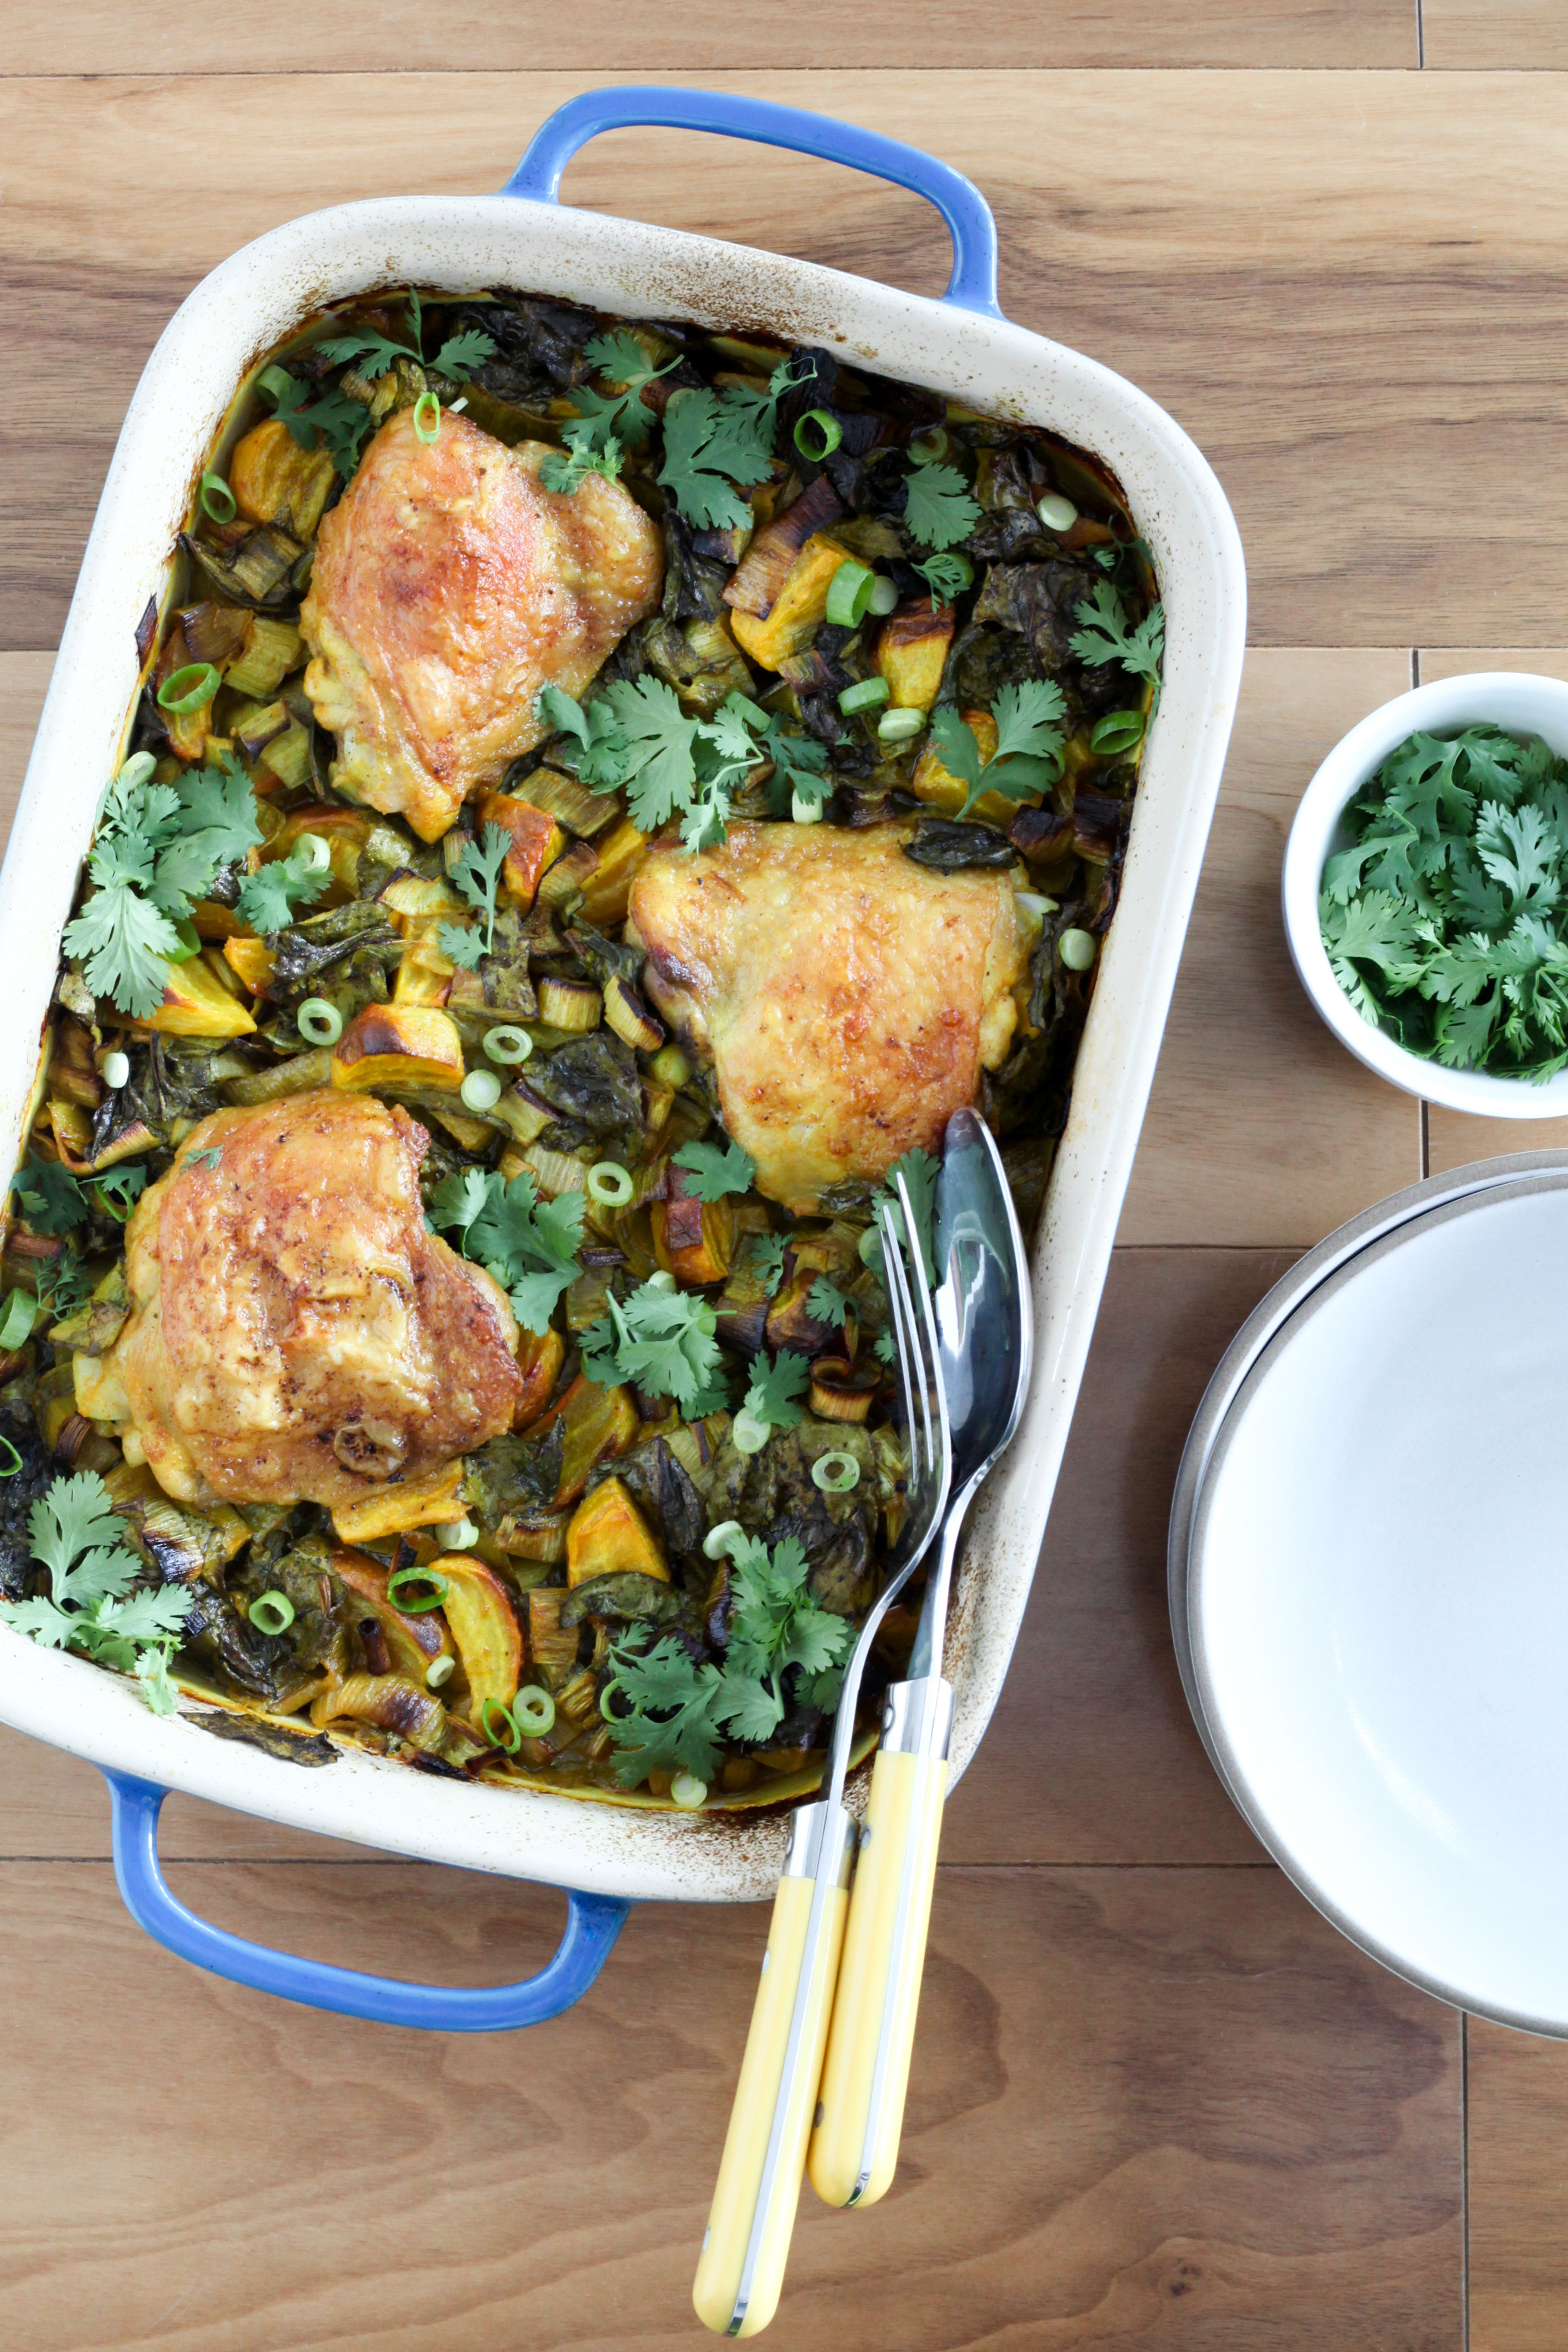 Turmeric Braised Chicken Thighs With Golden Beets and Leeks | A Modest Feast | @amodestfeast